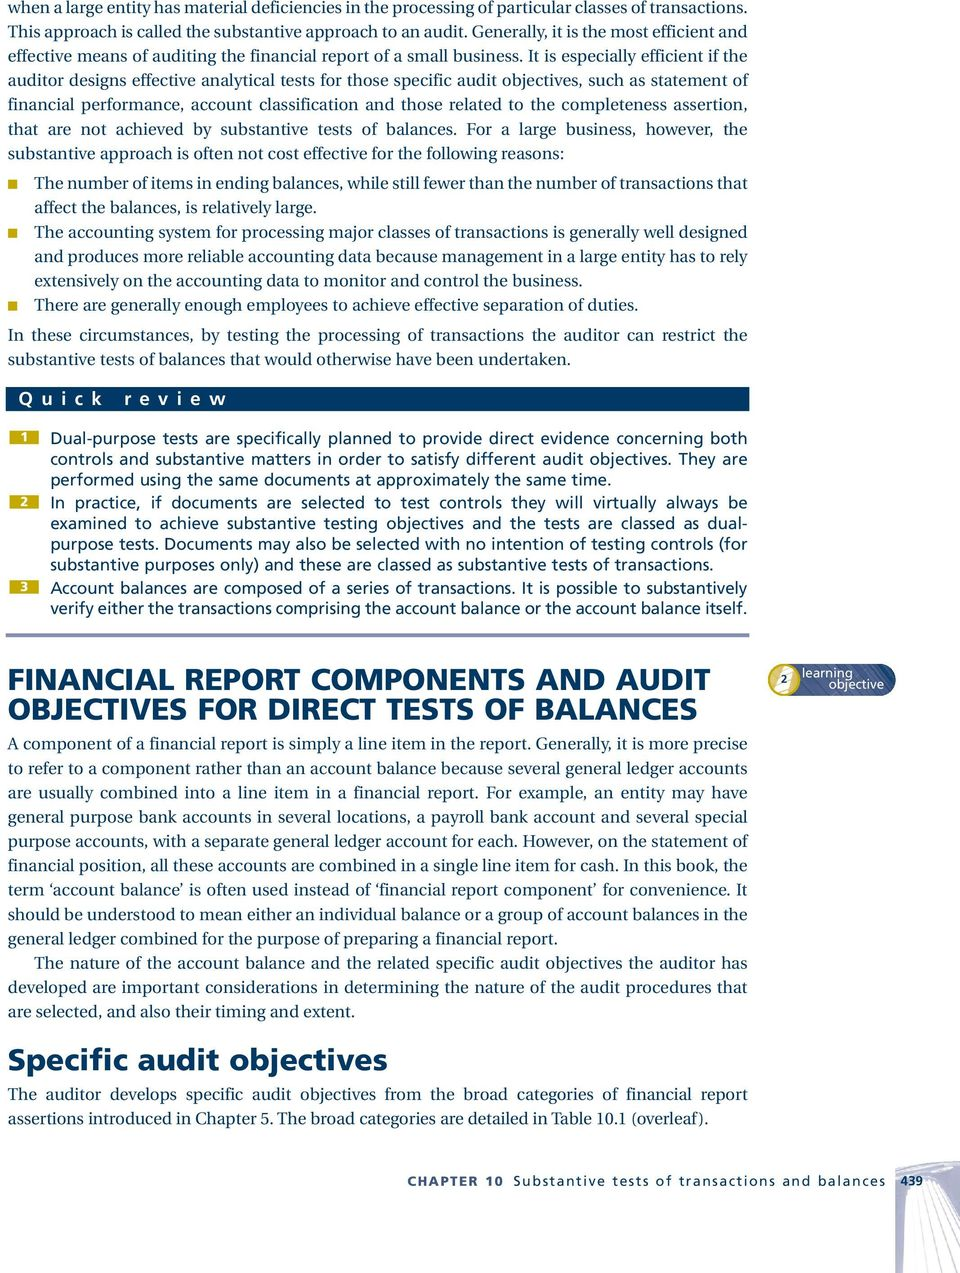 It is especially efficient if the auditor designs effective analytical tests for those specific audit objectives, such as statement of financial performance, account classification and those related